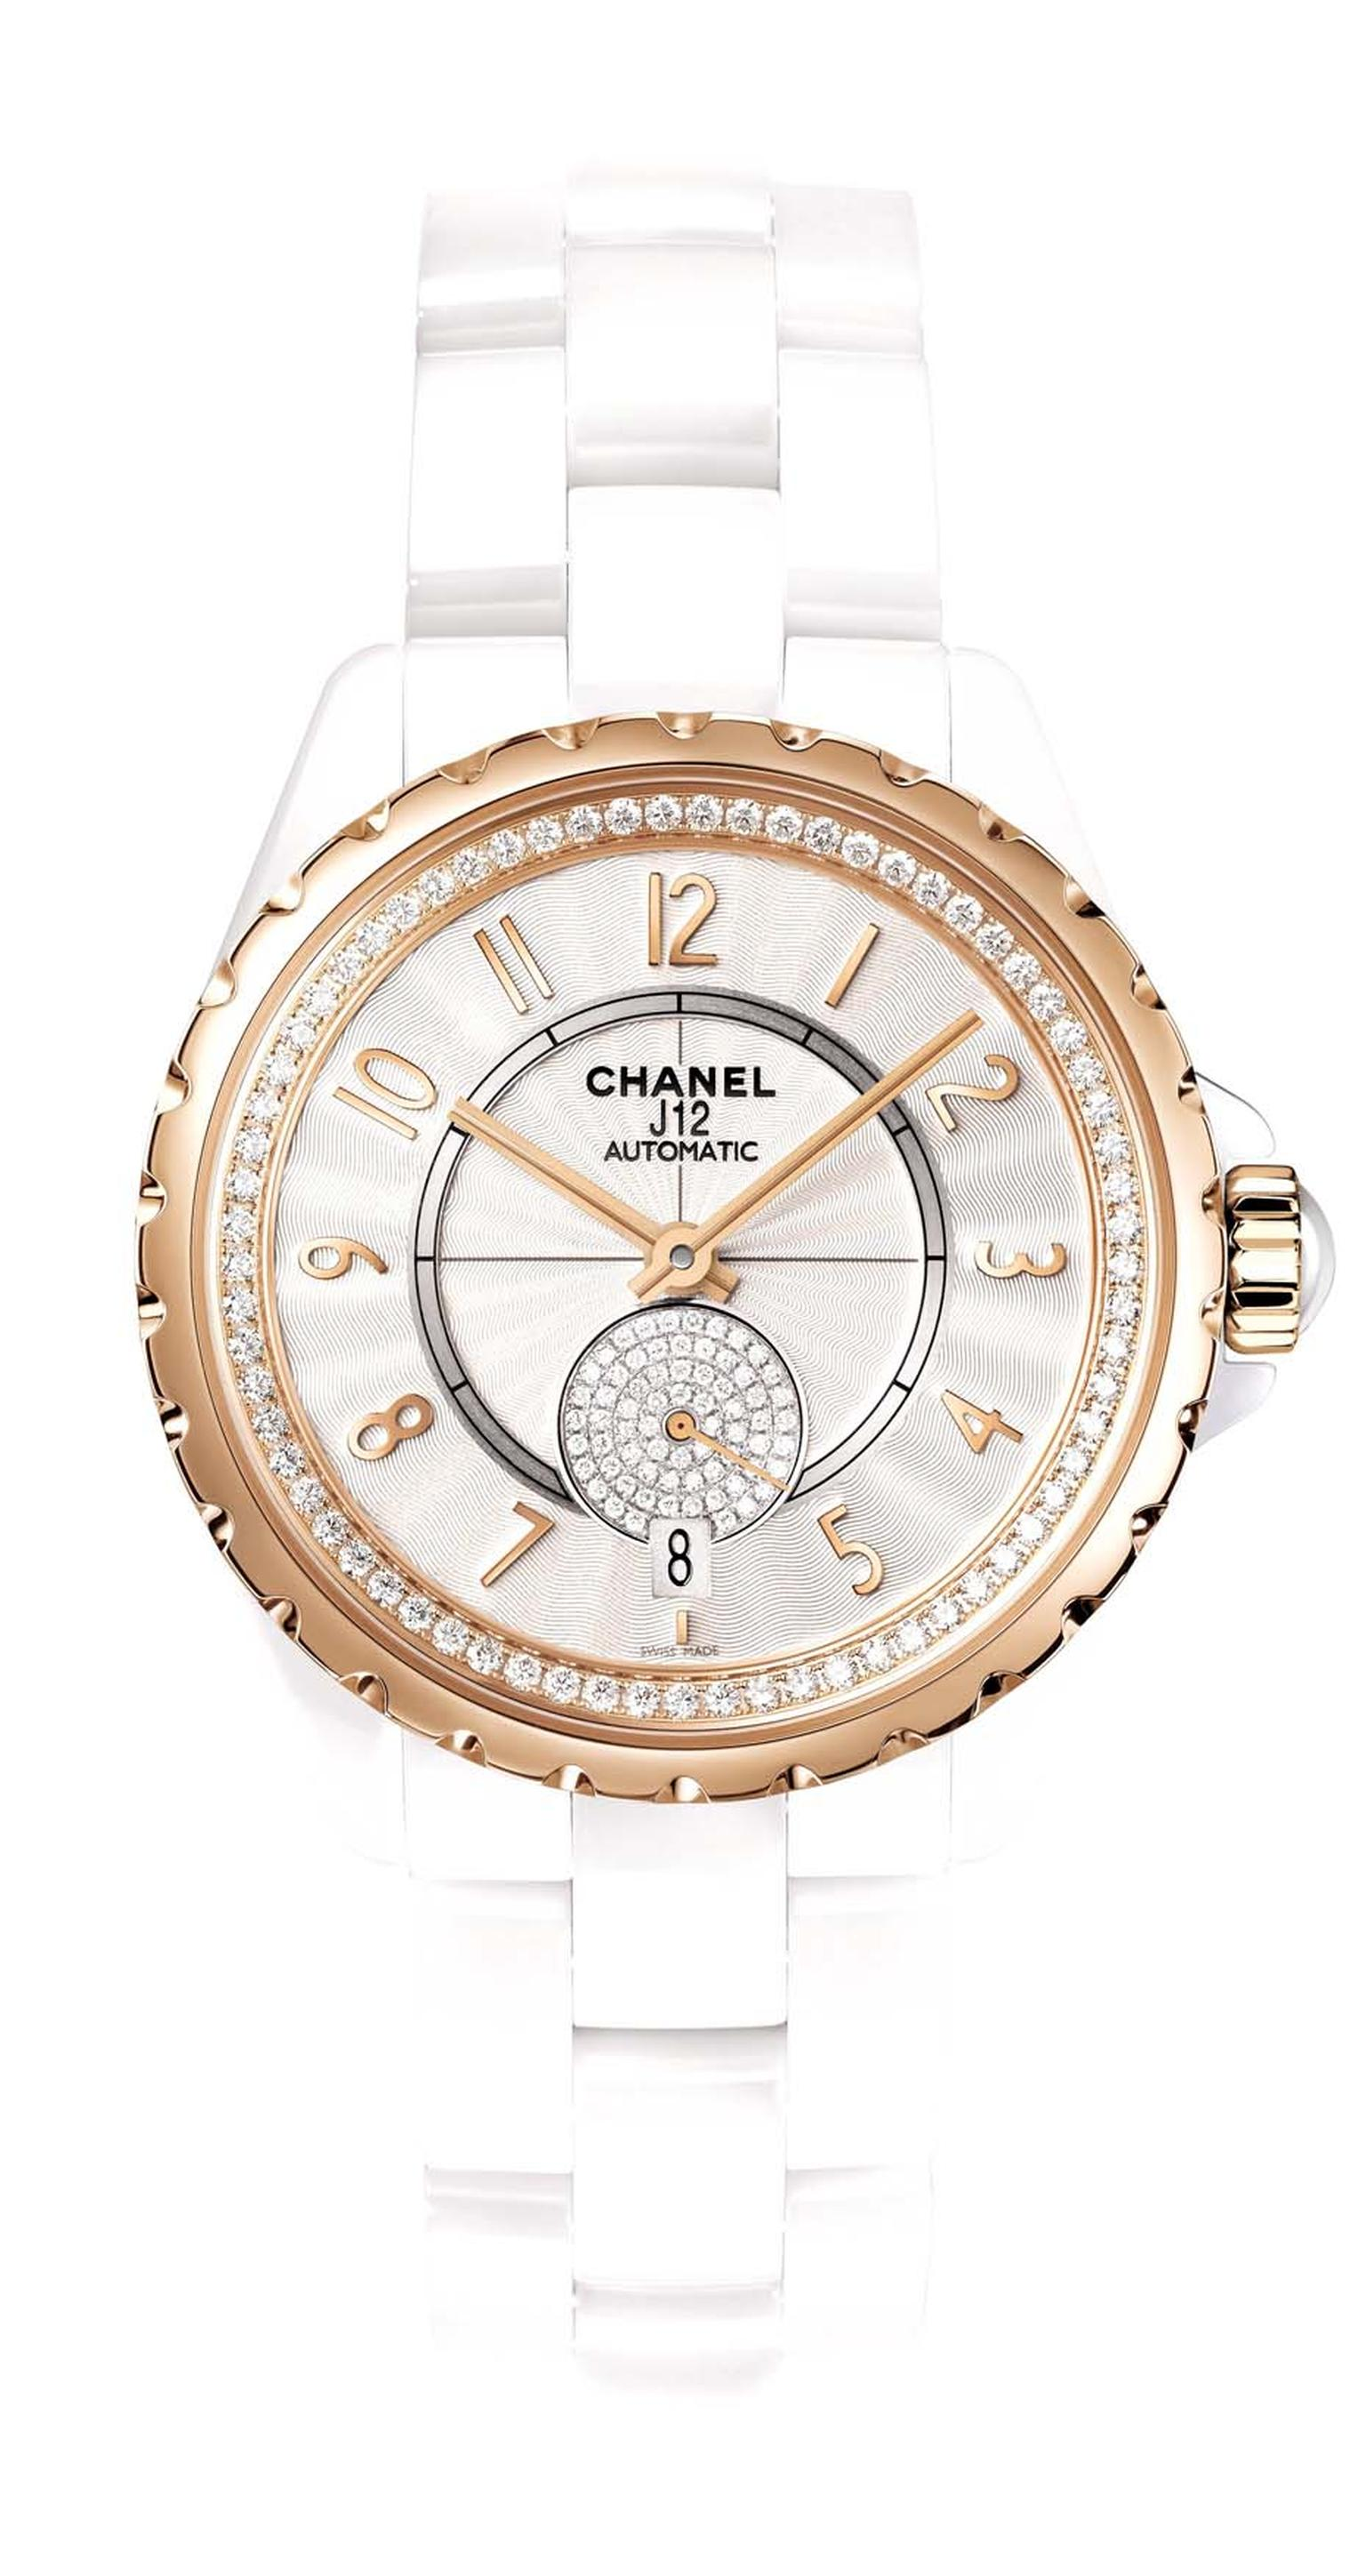 The new Chanel J12-365 women's watch collection, designed to be worn 365 days a year, is the latest addition to the J12 stable. The slightly smaller case of the Chanel J12-365 features white ceramic and an all-new beige gold alloy, both of which have been